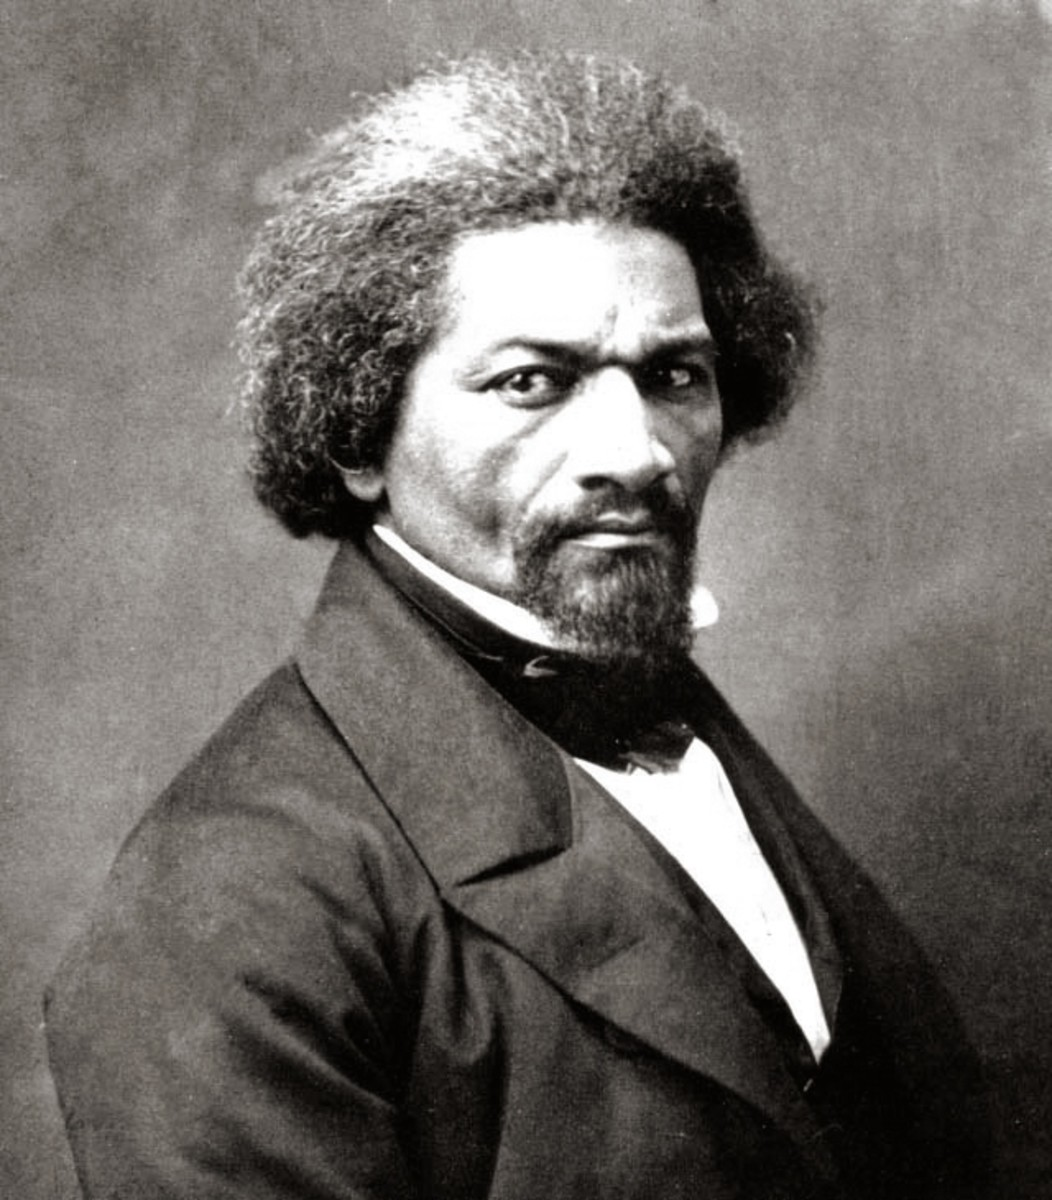 Frederick Douglass freed himself from slavery and went on to become one of America's leading abolitionists and even advised Lincoln on occasion.